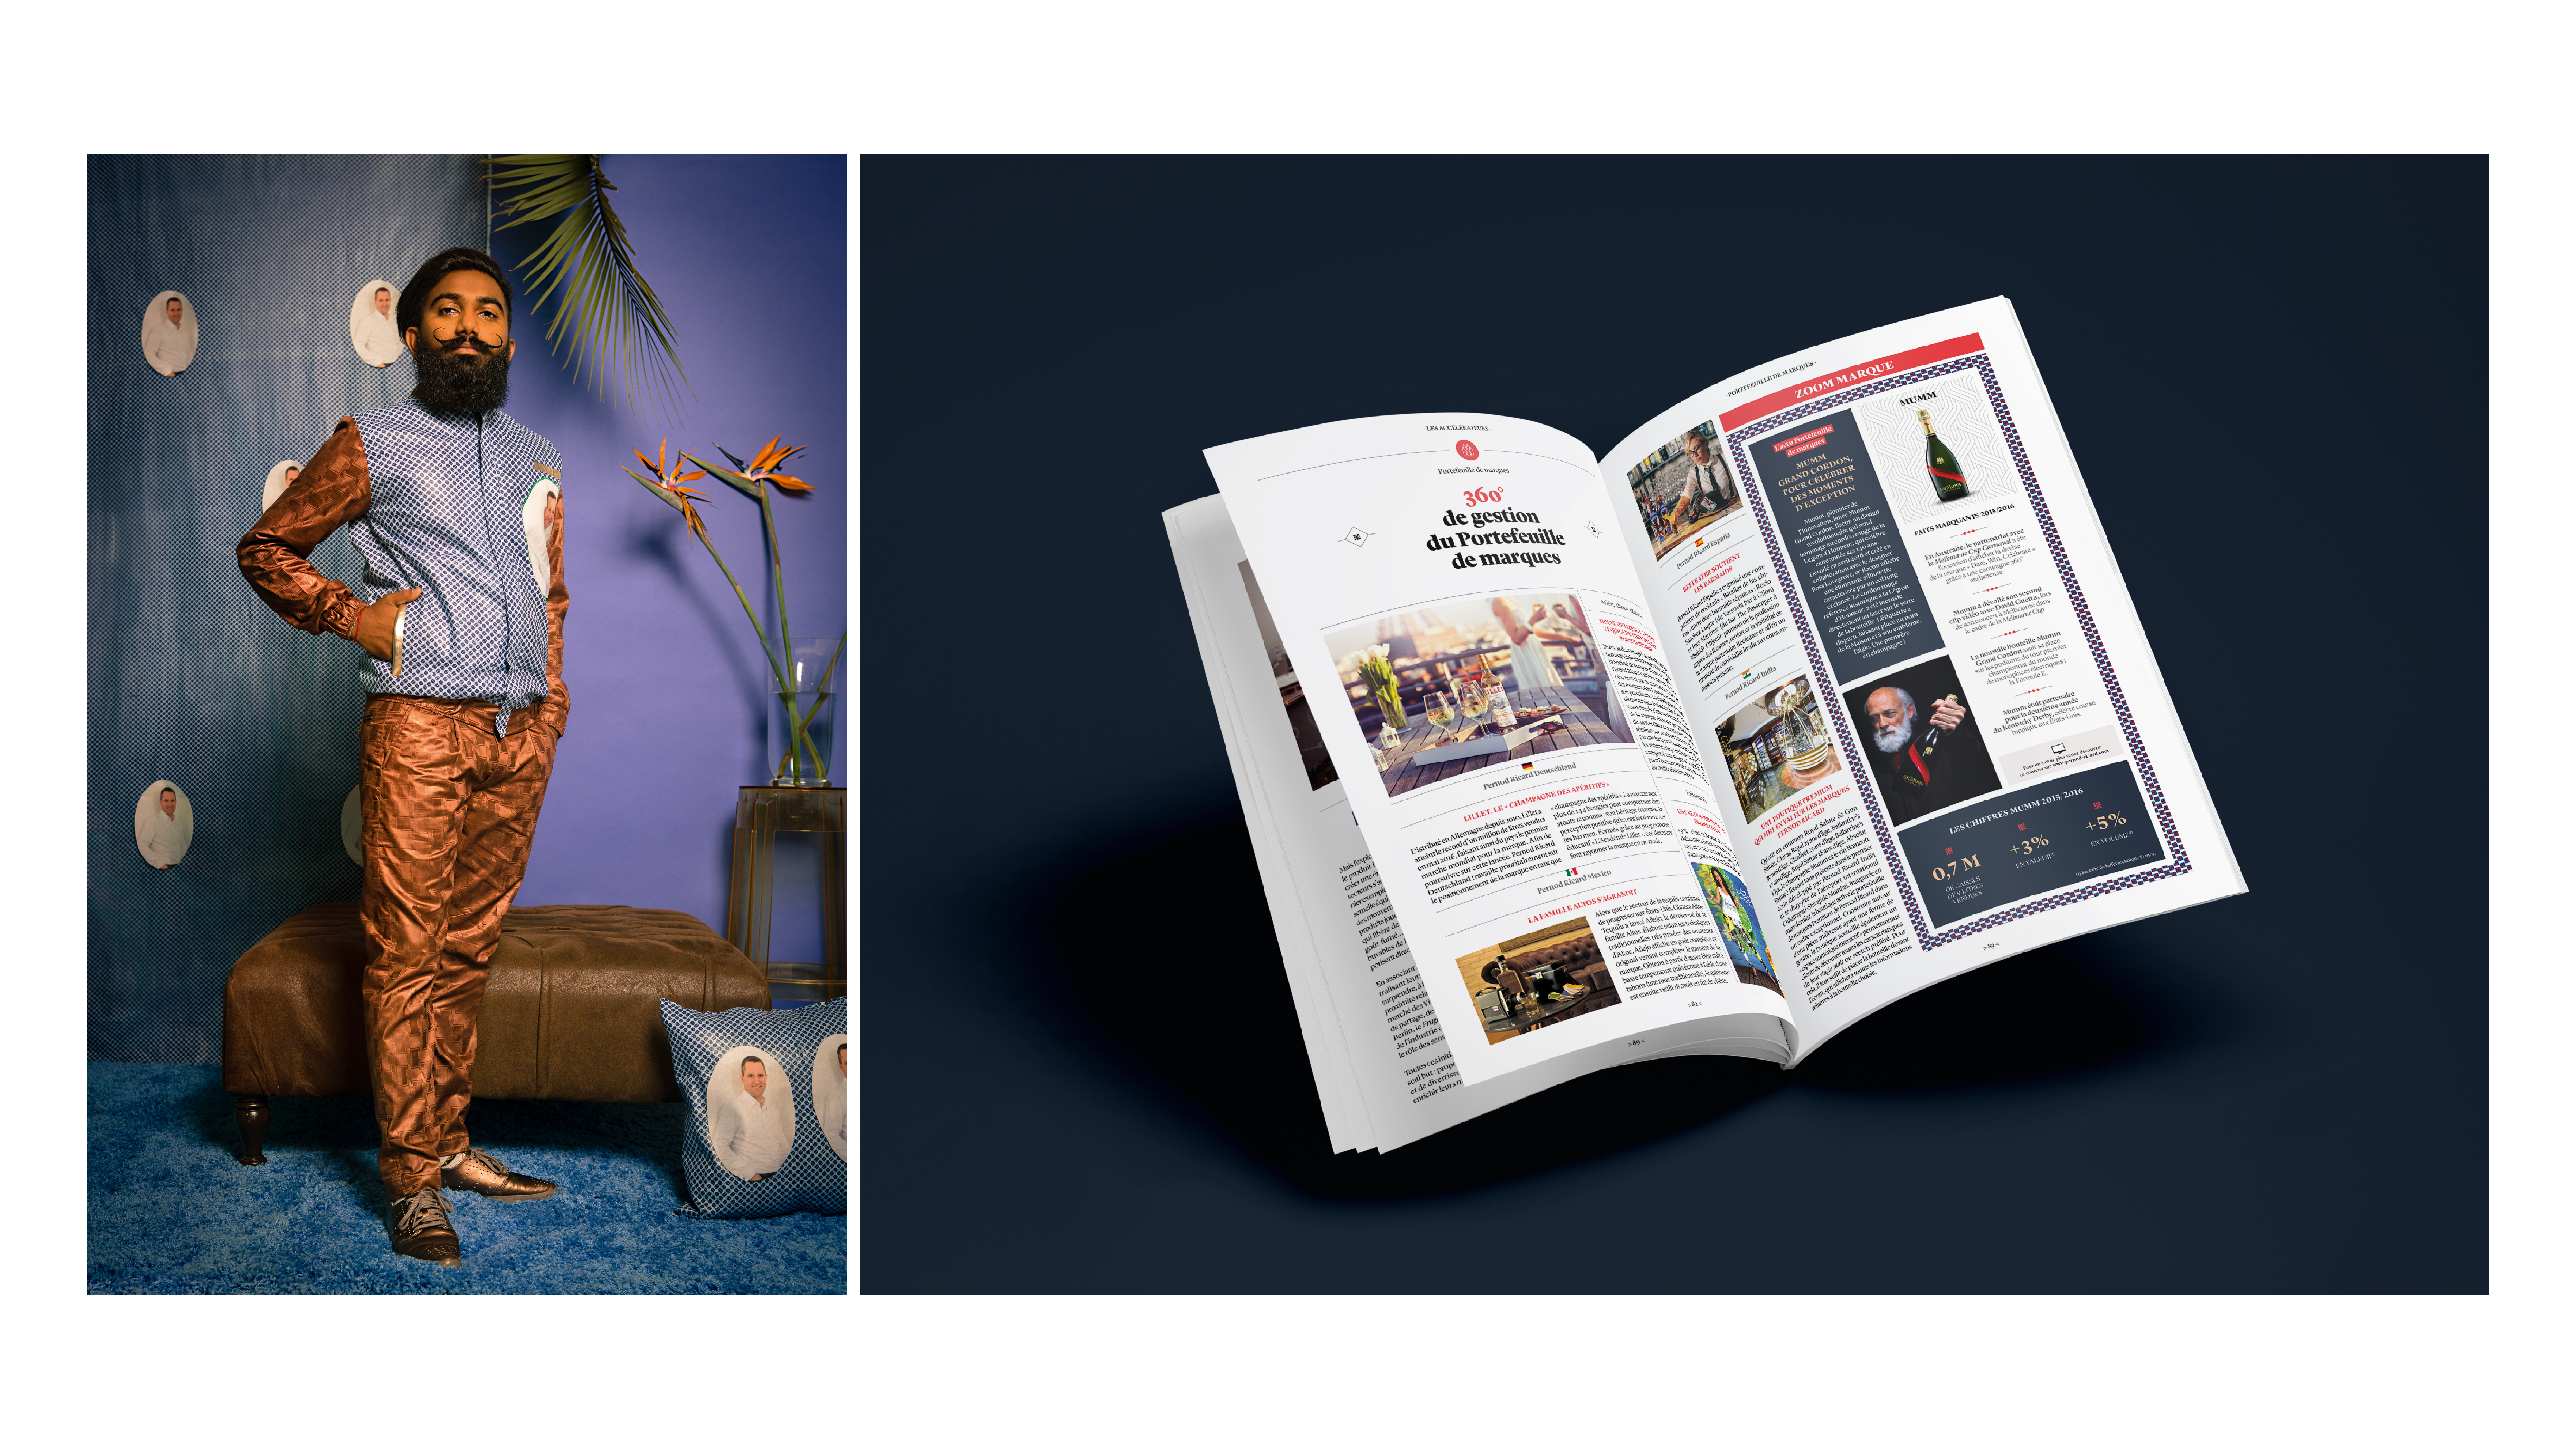 Thumbnail for Pernod Ricard 2015/2016 Annual Report - Mindset